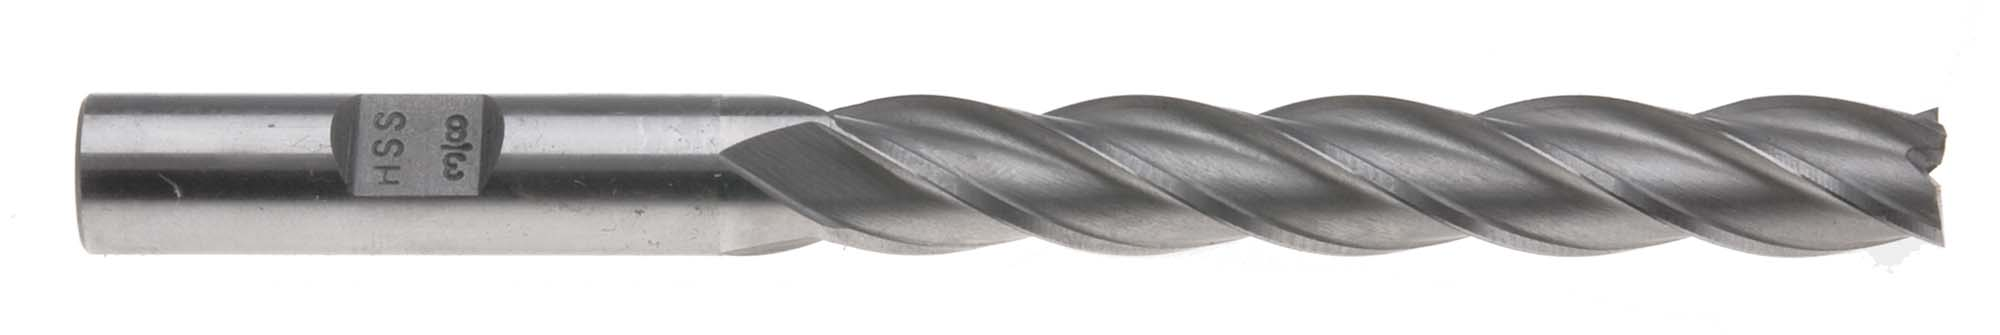 "3/4"" 4 Flute Extra Long Center Cut End Mill - 3/4"" Shank, High Speed Steel"